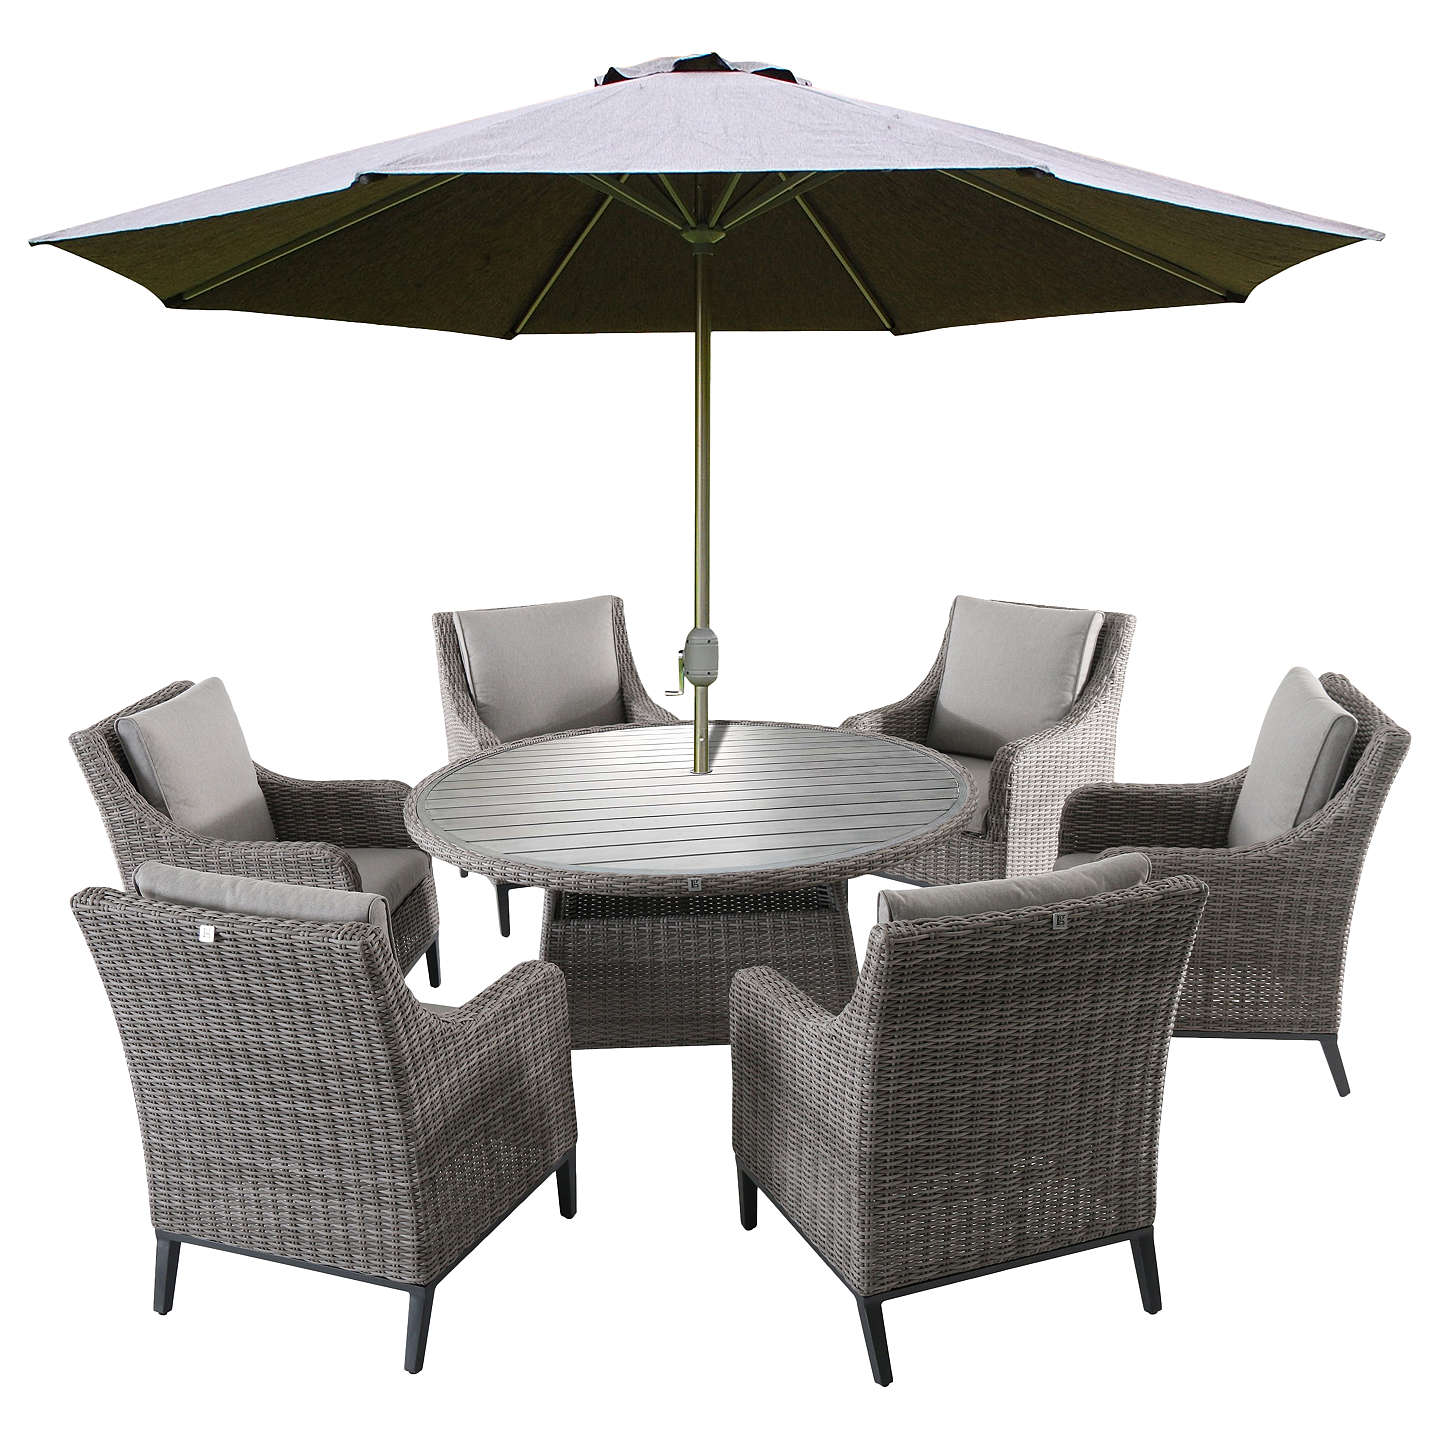 LG Outdoor Copenhagen 6 Seater Garden Dining Table And